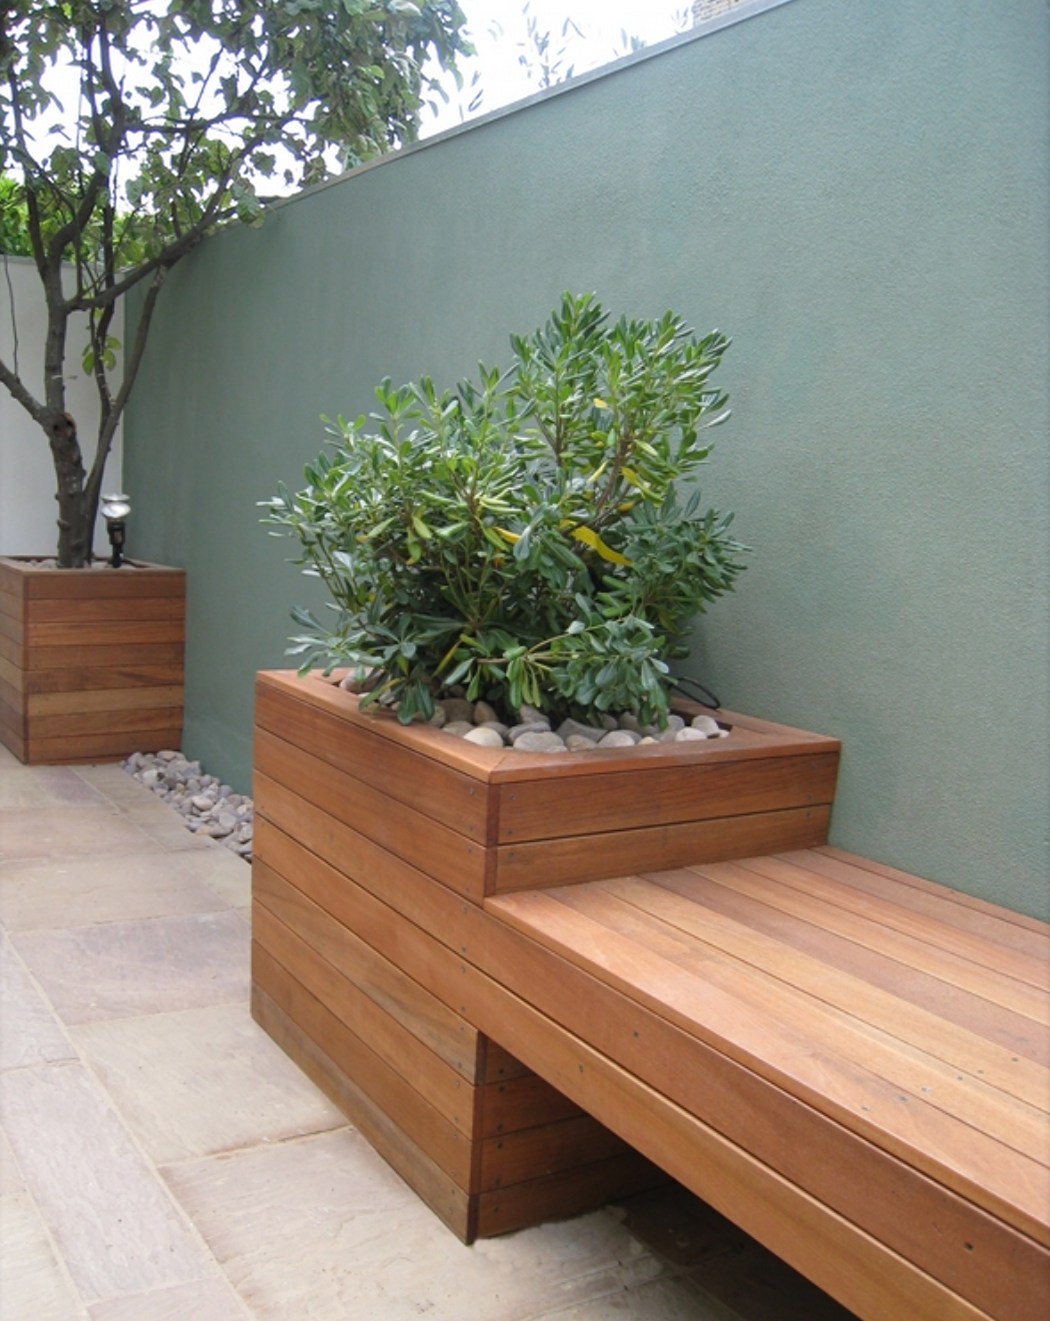 Built In Outdoor Seating Home Design Ideas Pictures: Built-in Planter